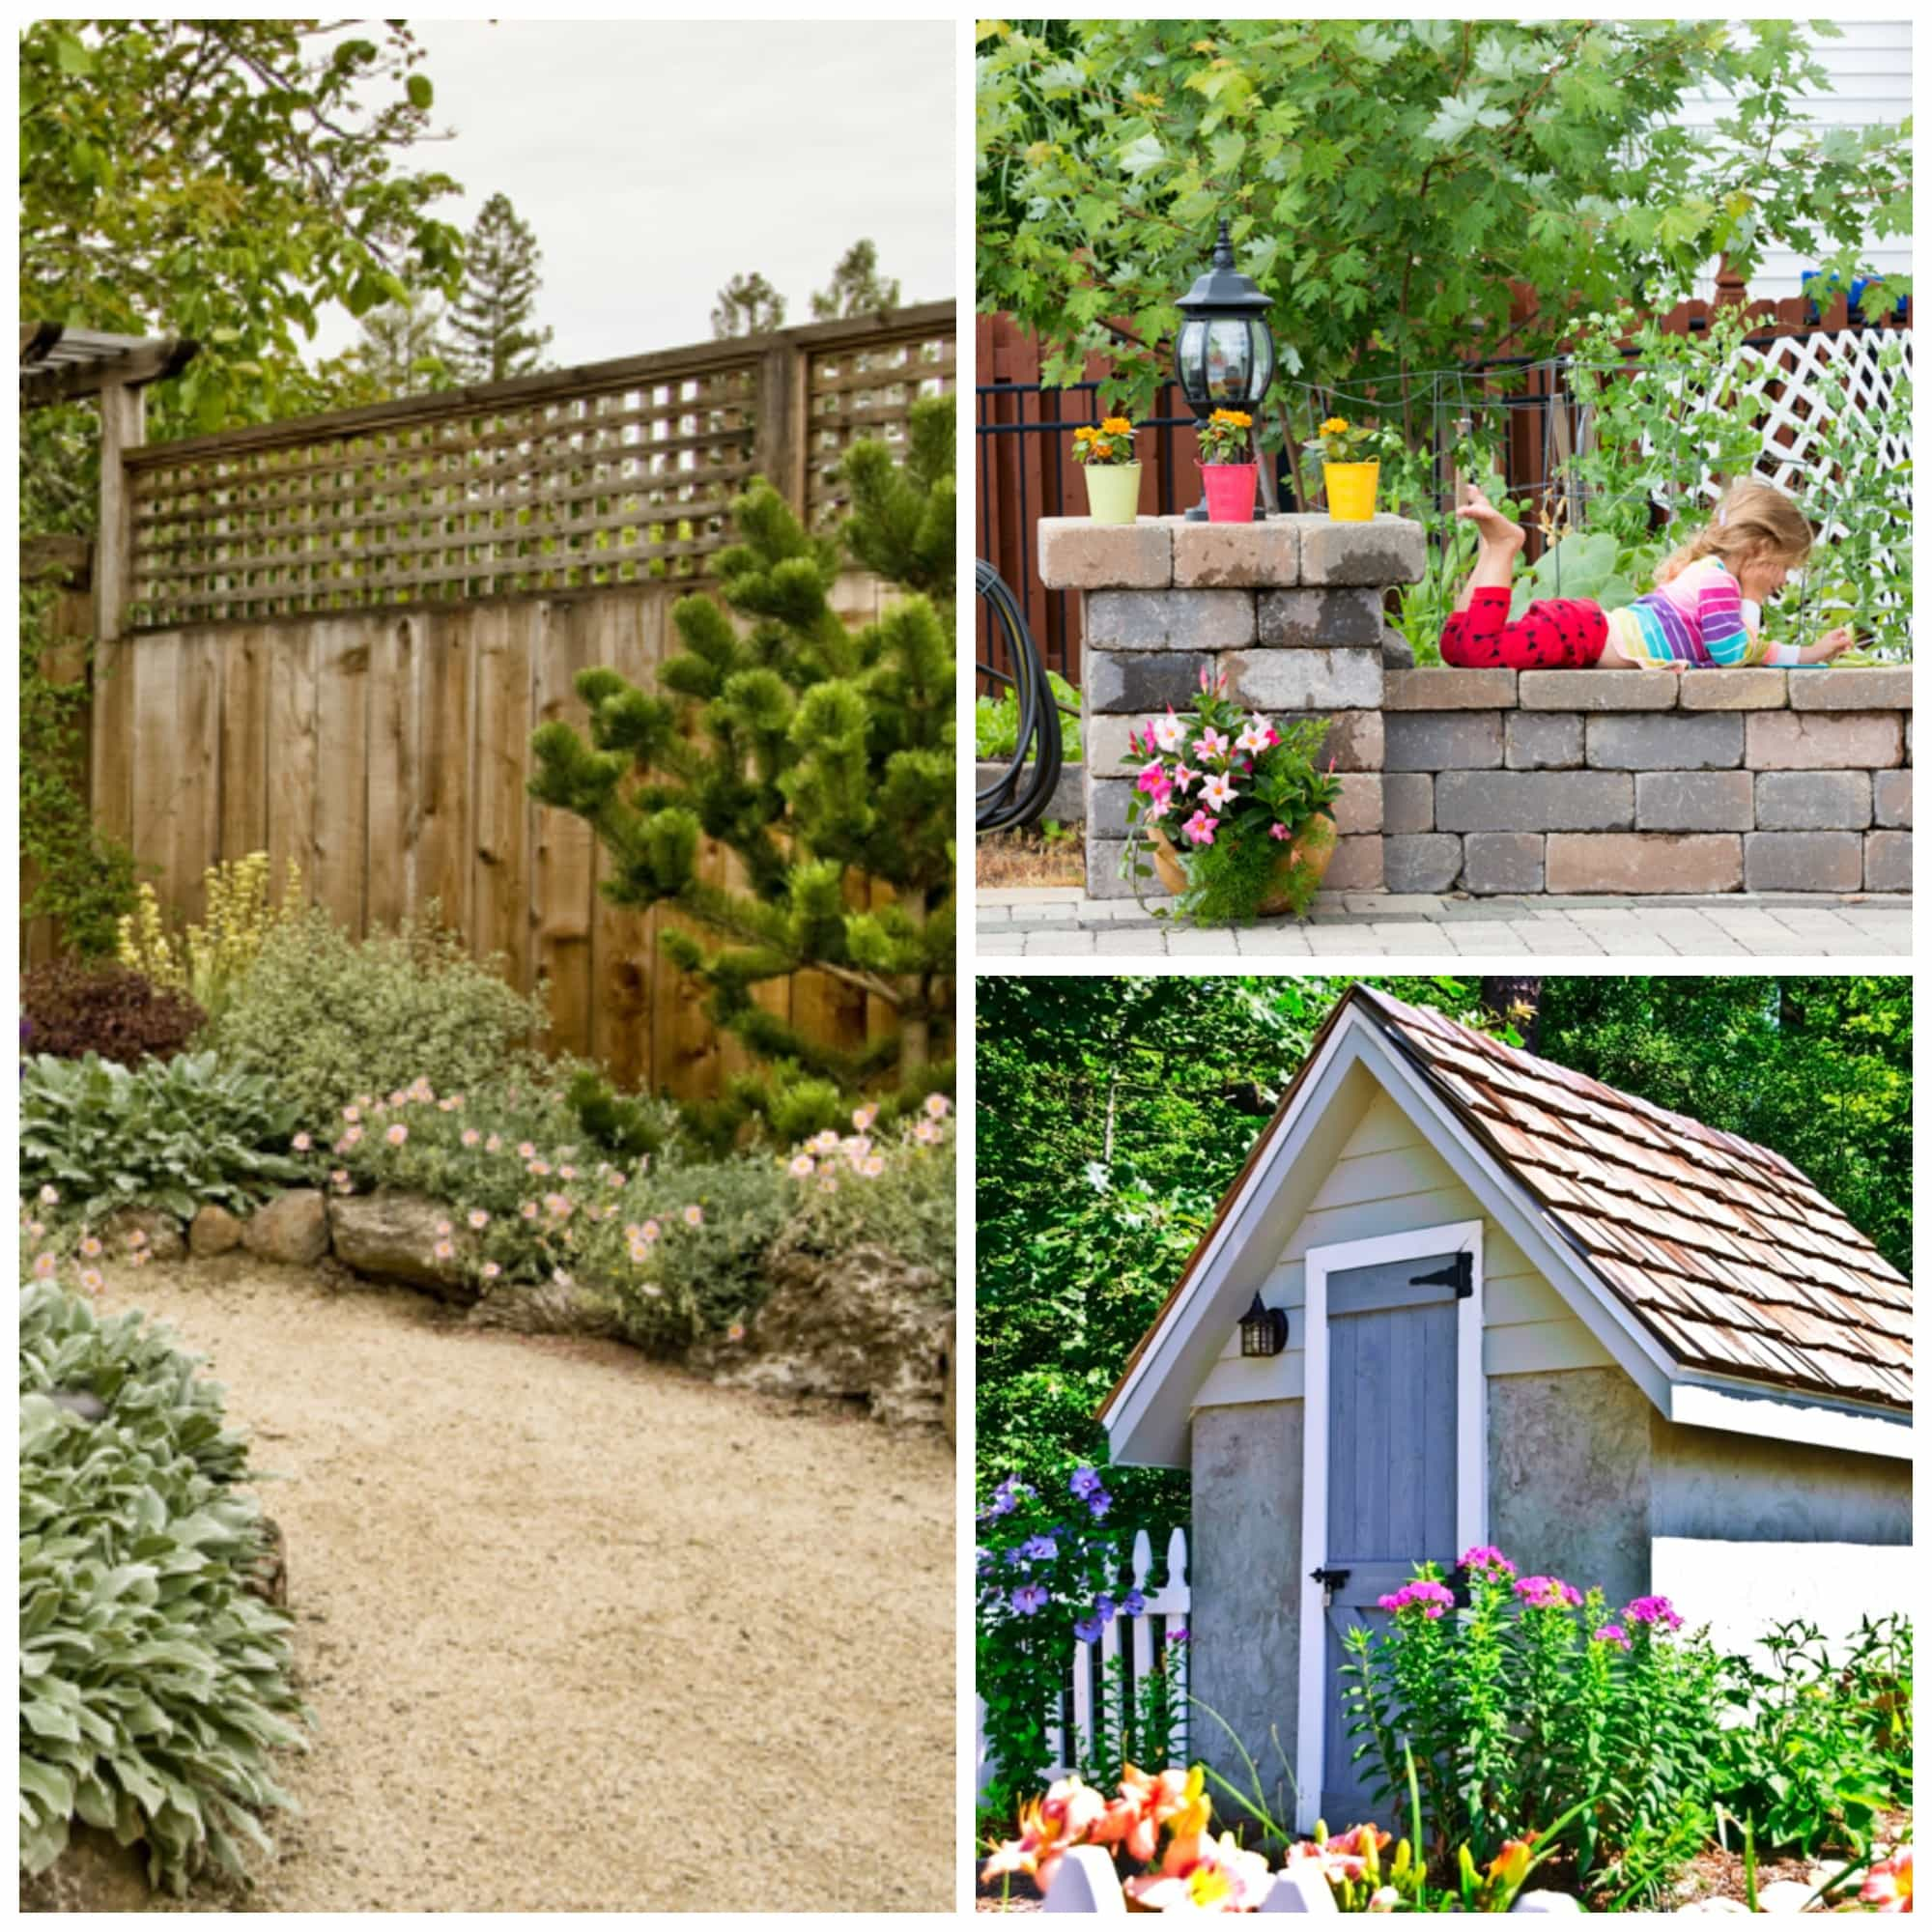 Small Garden Designs: Small Garden Design Ideas For Your Backyard